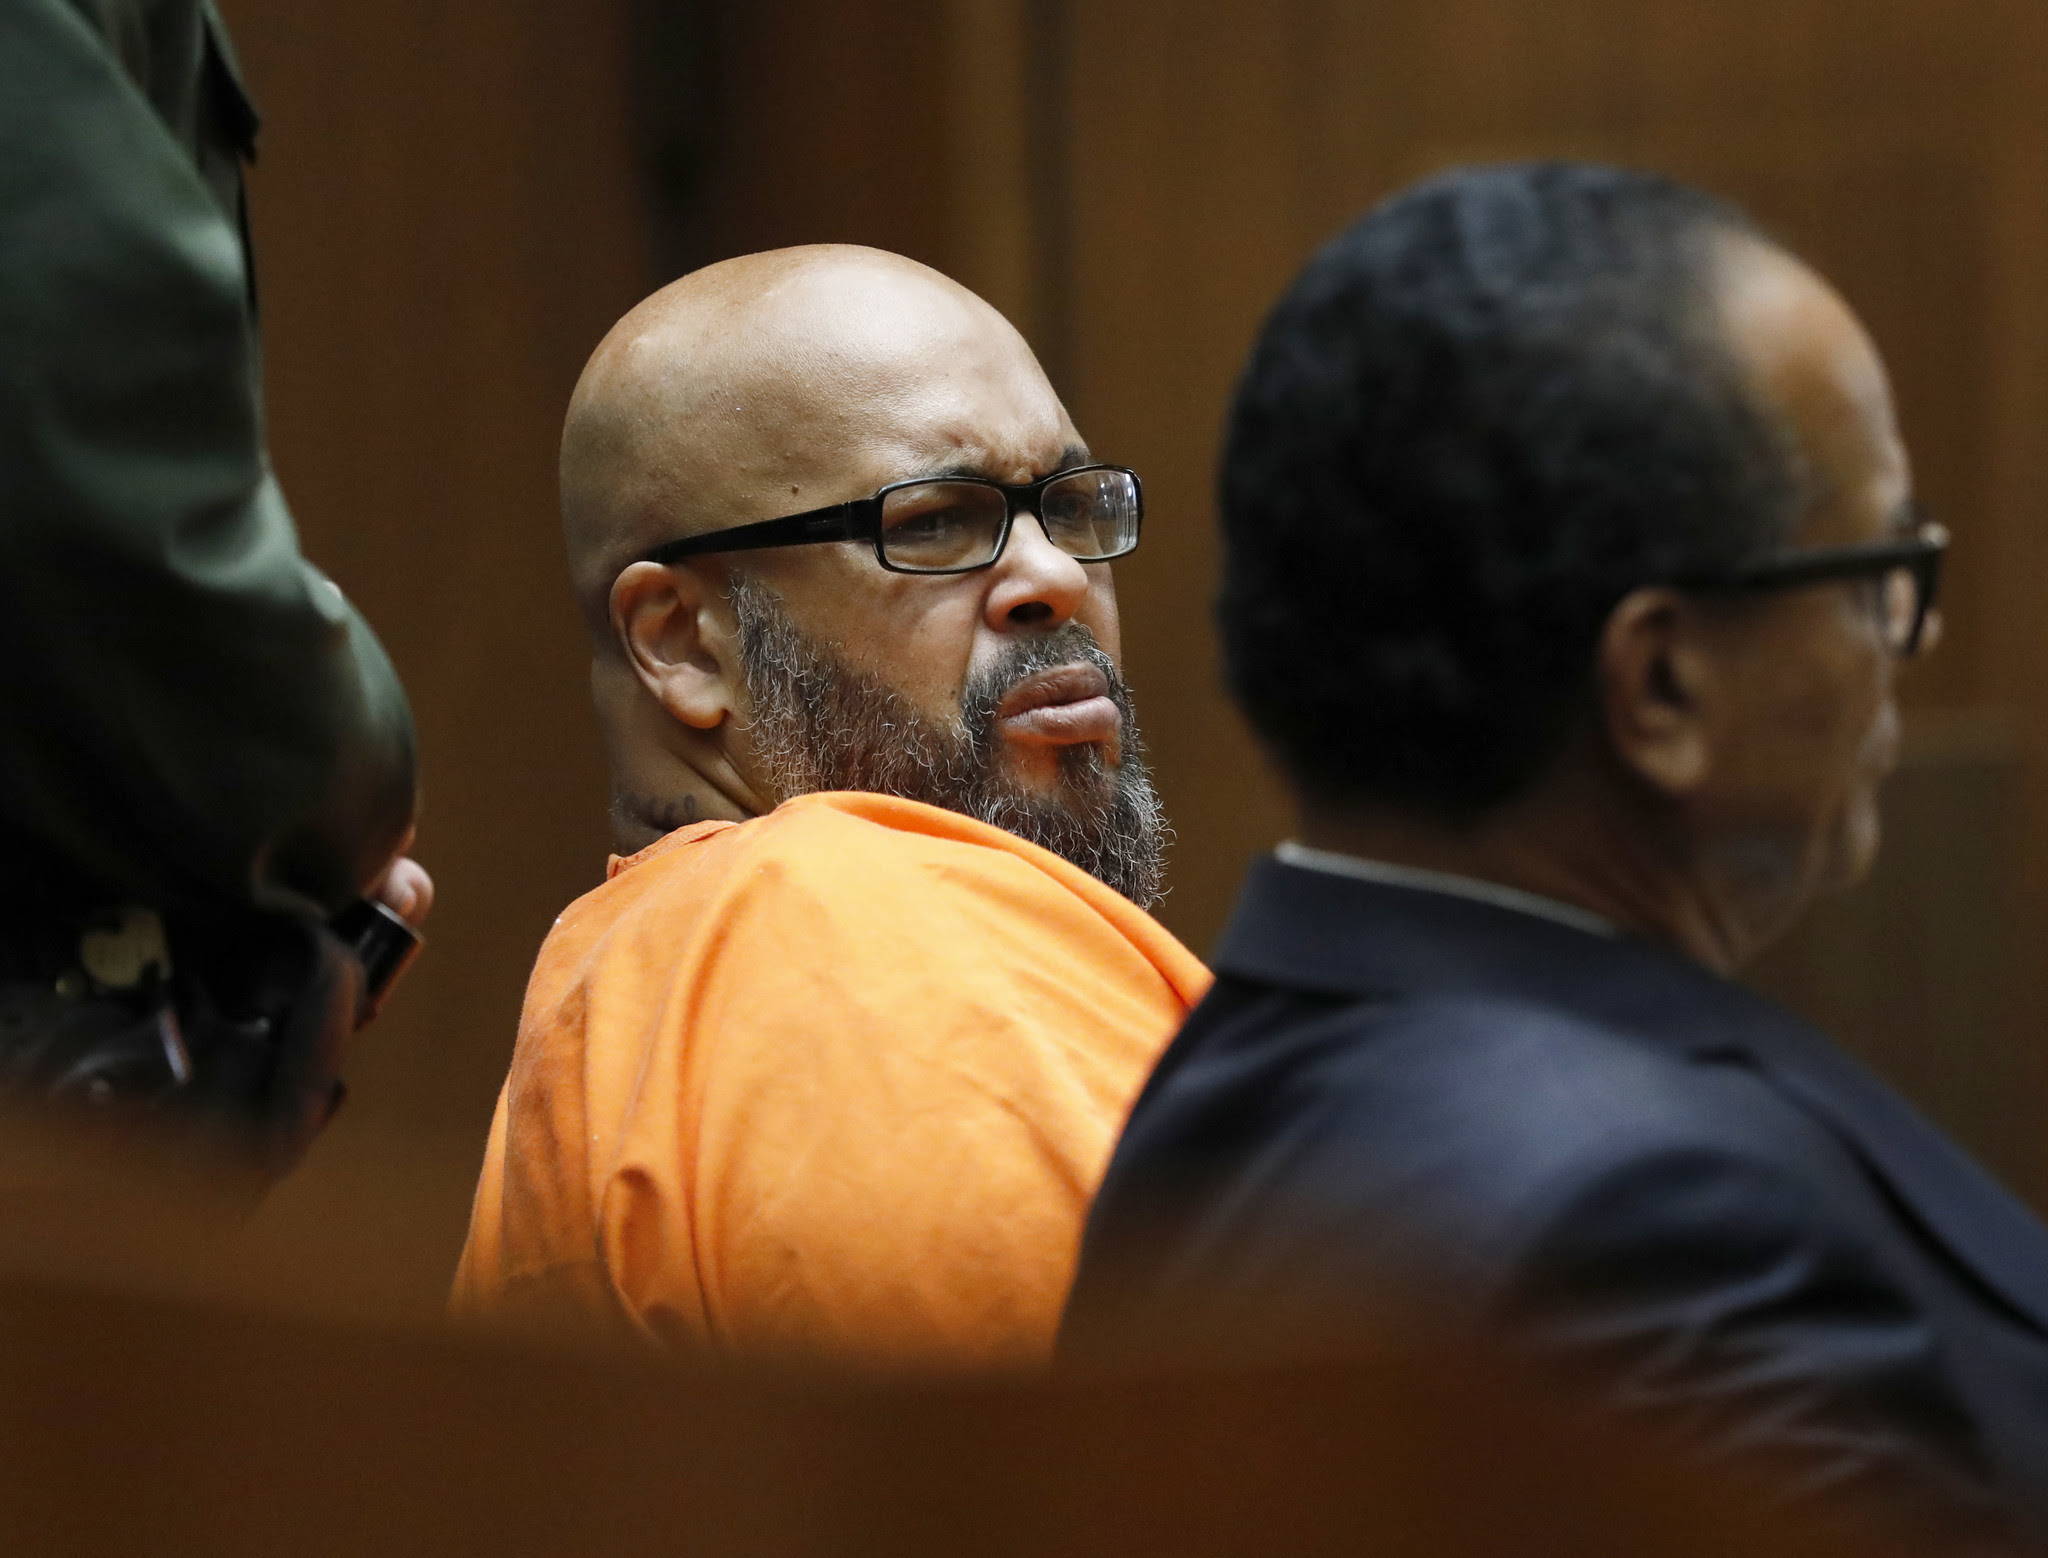 Suge Knight pleads to manslaughter over fatal confrontation, agrees to 28 years prison